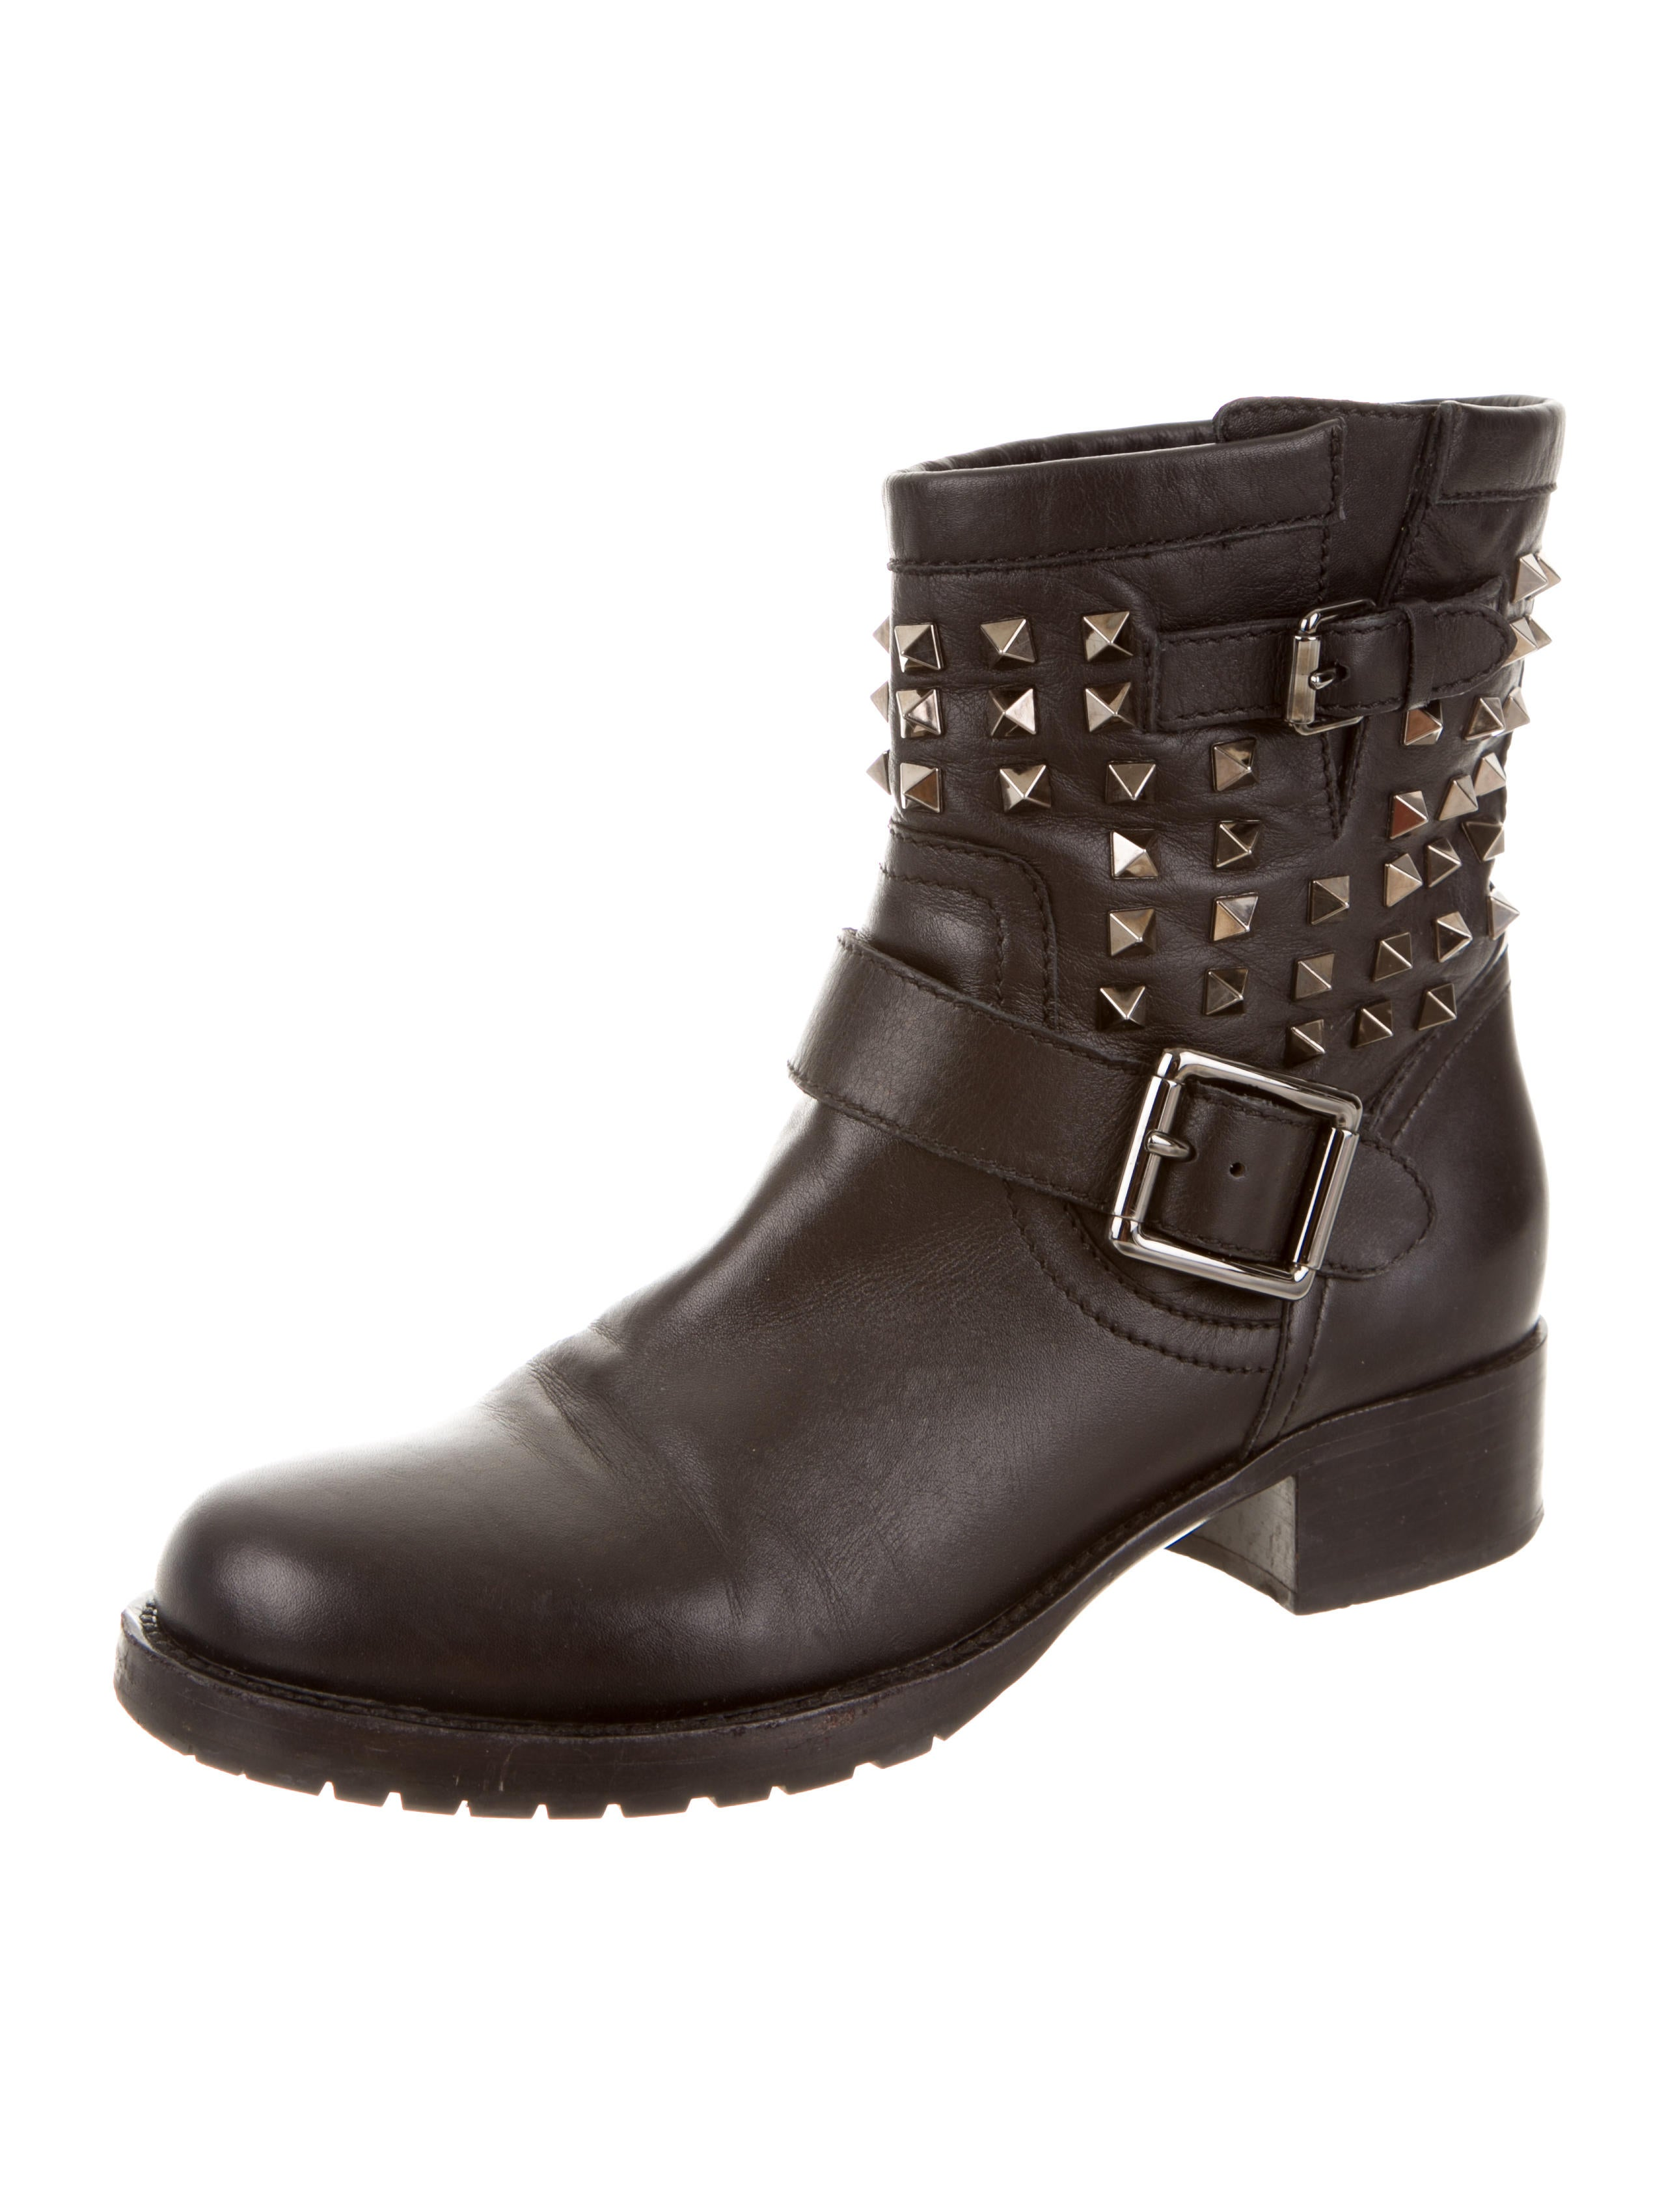 valentino leather rockstud moto boots shoes val38917